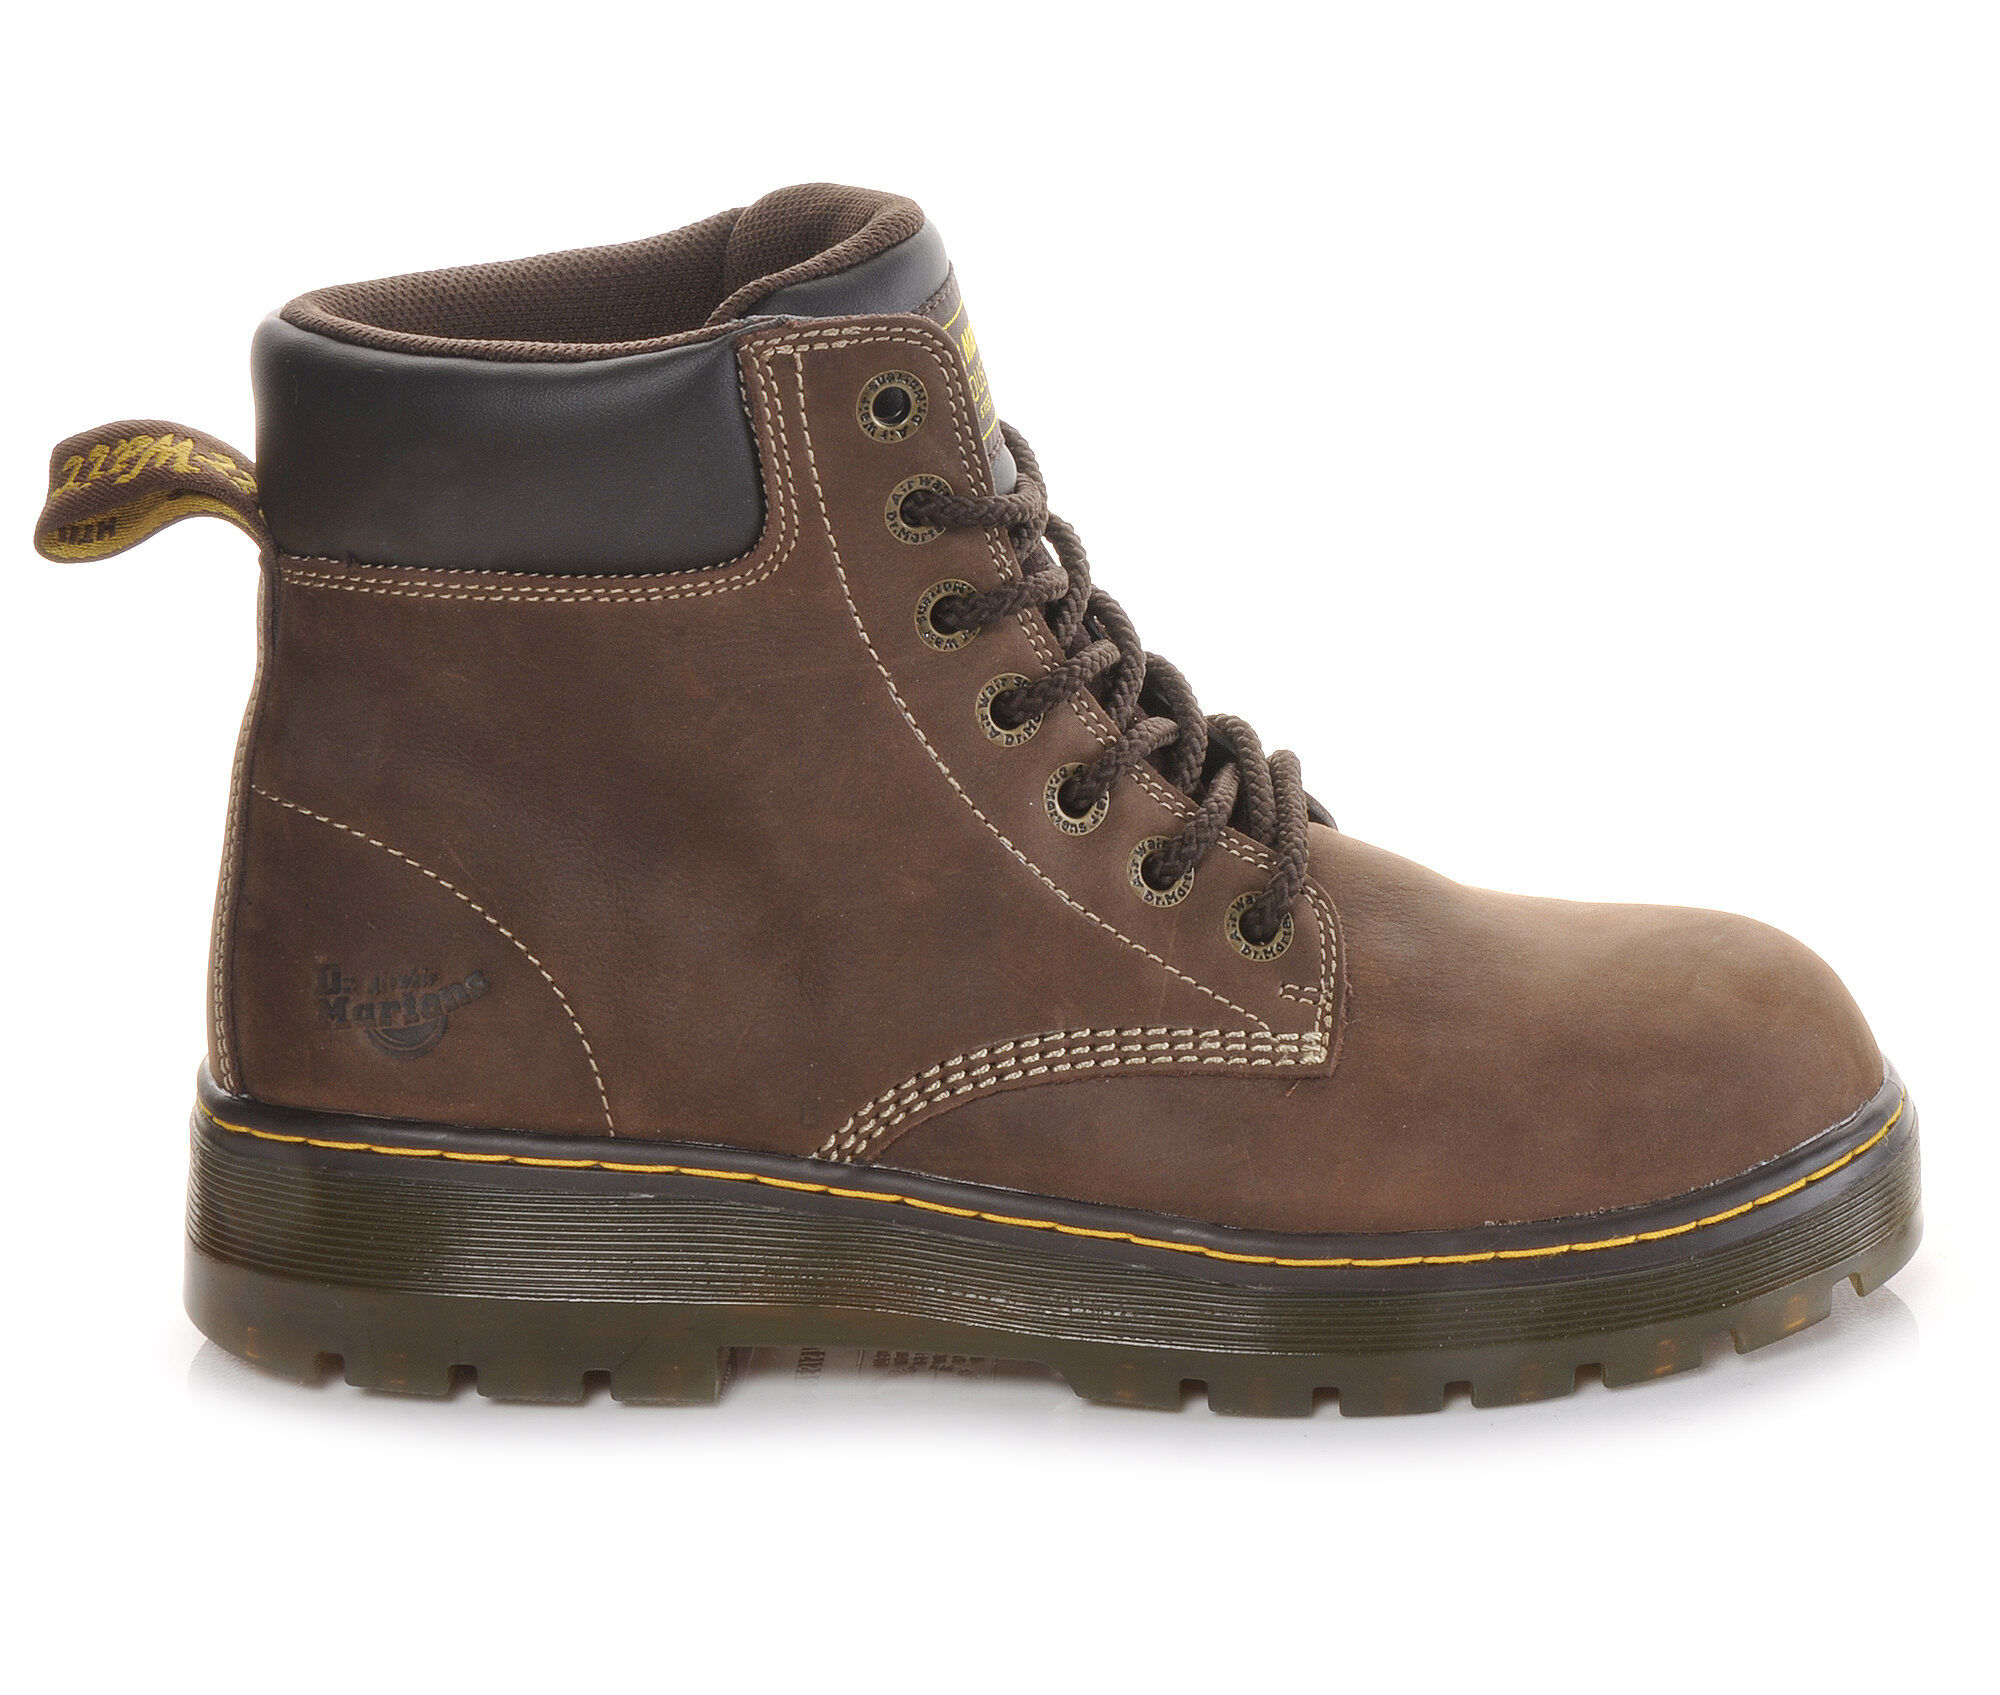 Men's Dr. Martens Industrial Winch Steel Toe Work Boots free shipping websites sale how much cheap manchester great sale wAUyUrfjxV